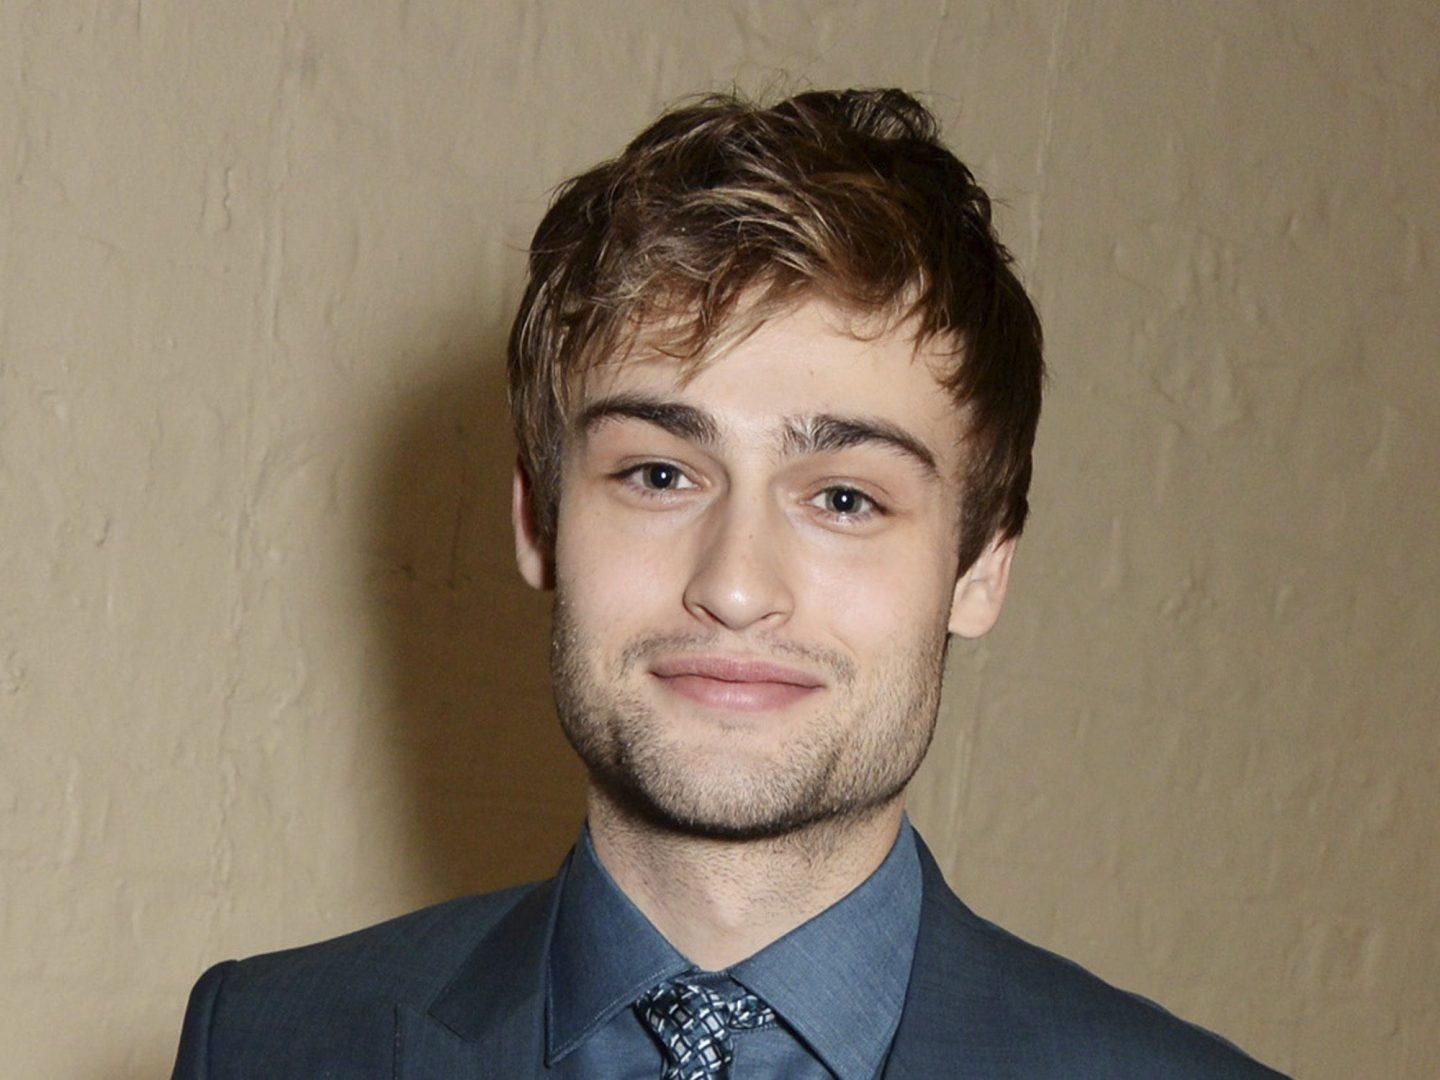 Douglas Booth Wik, Bio, Age, Education, Height, TV Shows ...